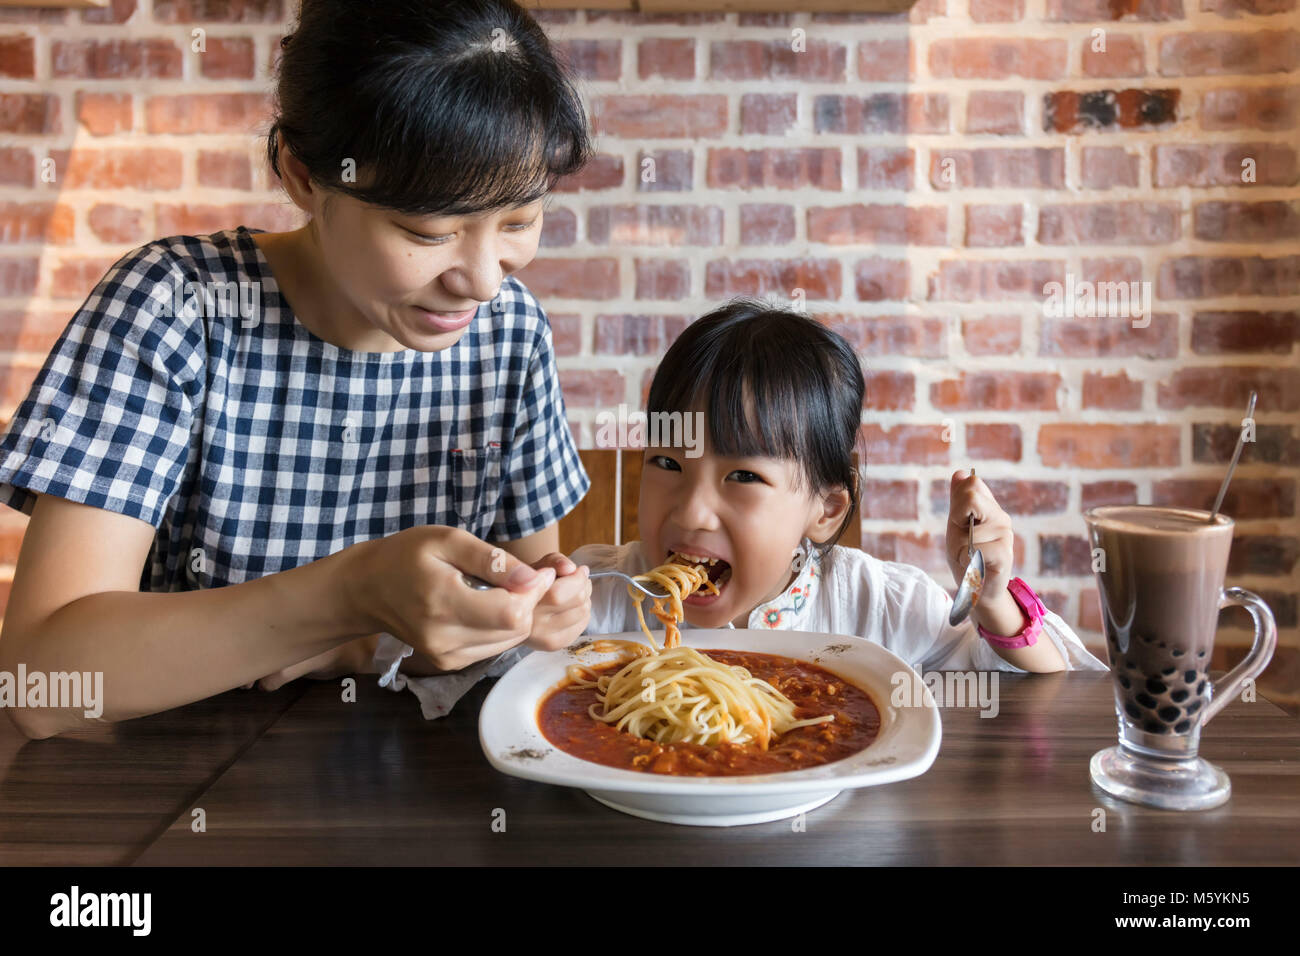 Asian Chinese mother and daughter eating spaghetti bolognese in the restaurant - Stock Image